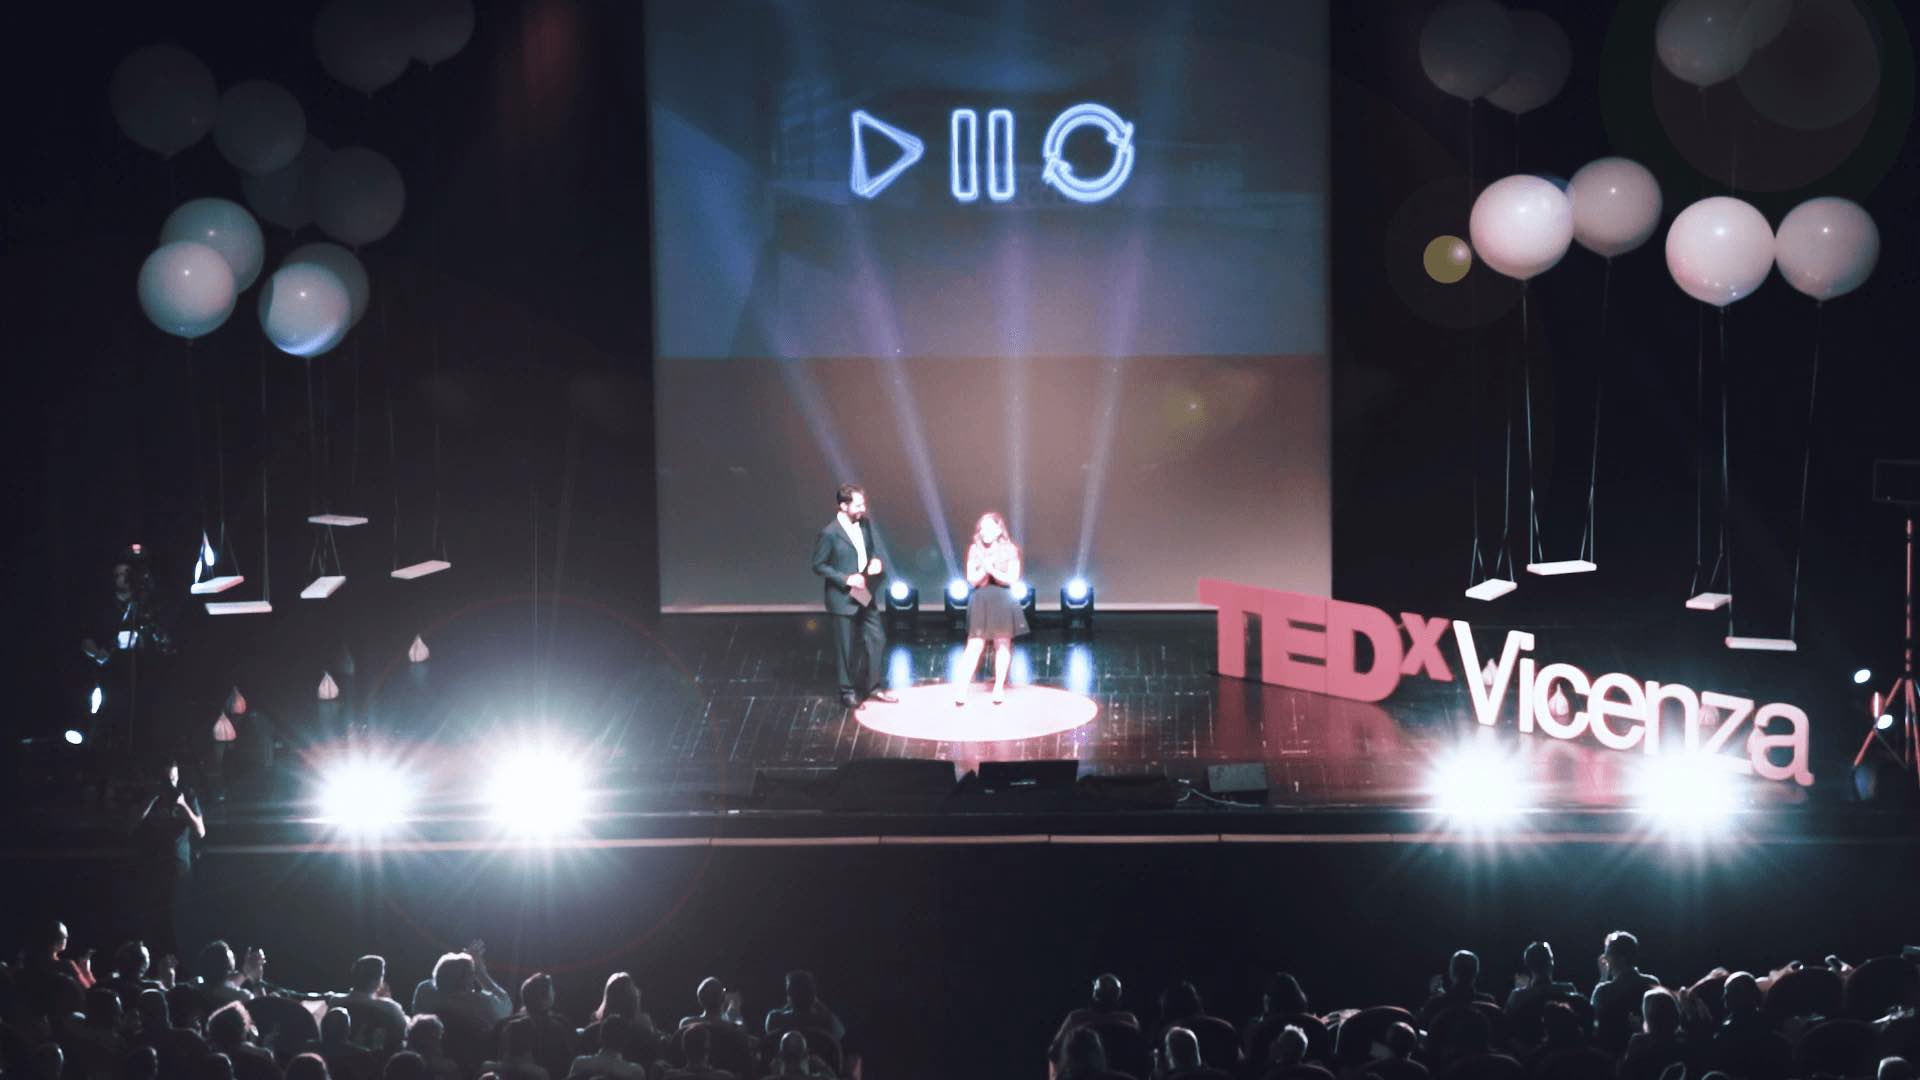 TEDx Vicenza 2019 - Theme: Transitions - Italy by US